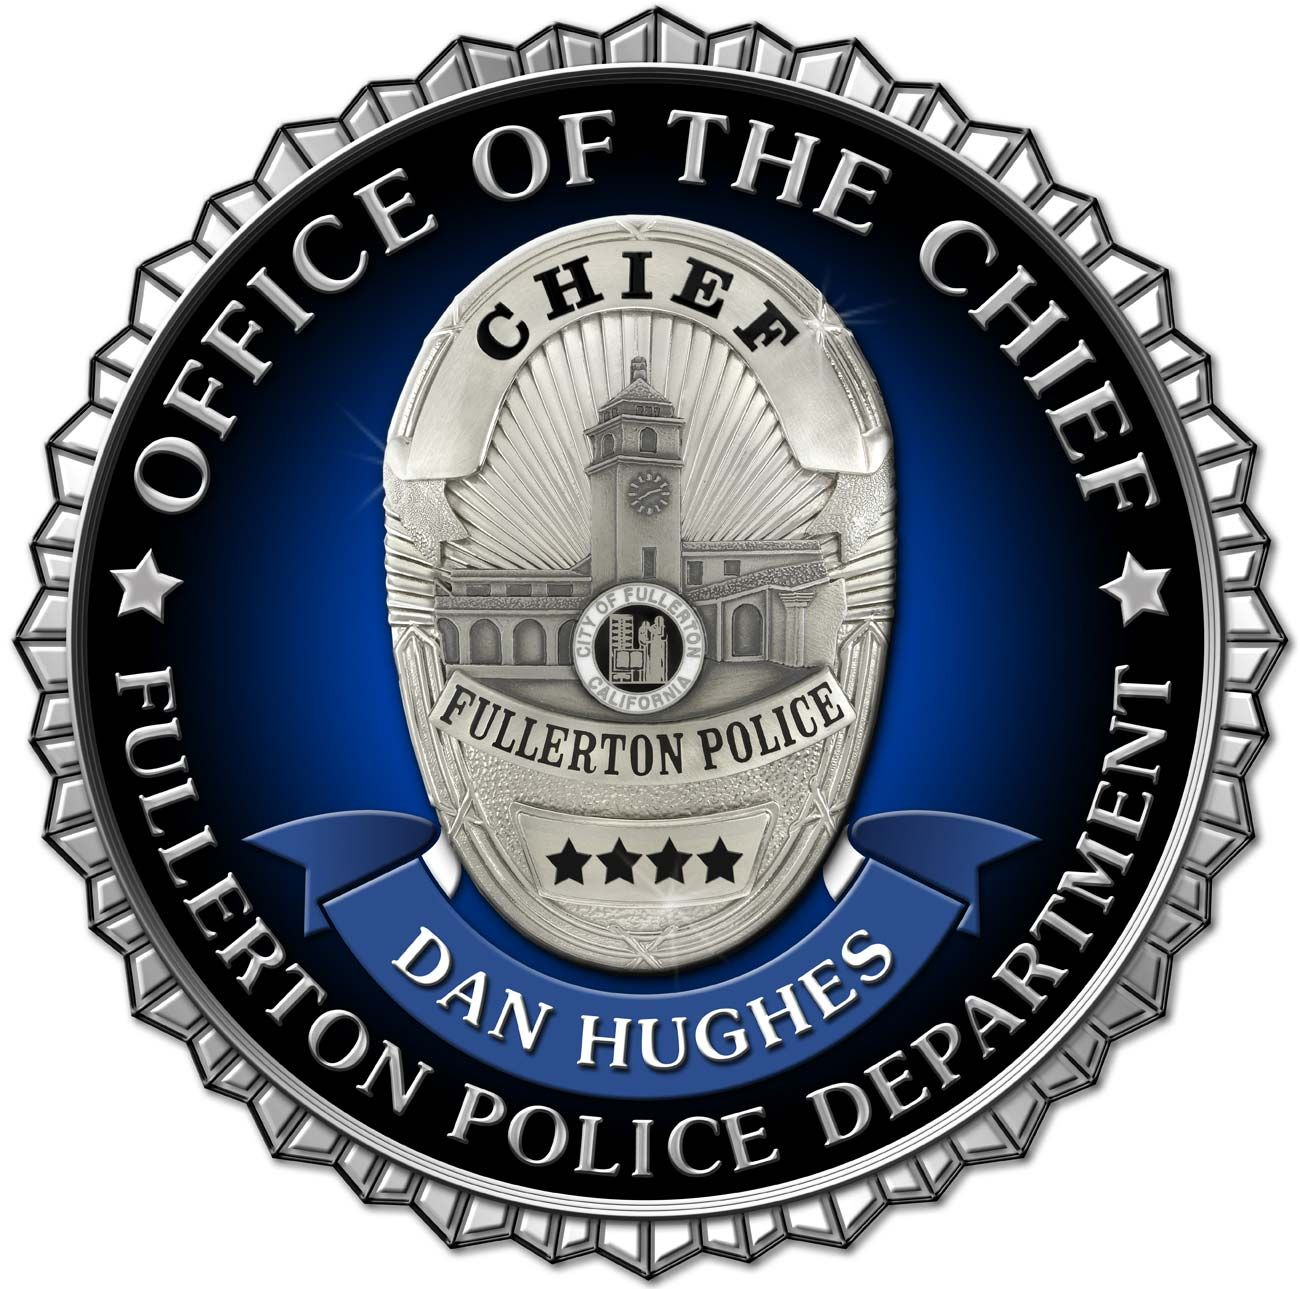 Fullerton Pd Chief Seal With Scalloped Edges See Our Webite Section Emblems Seals For 100 S More Emblems Sheriff Badge Police